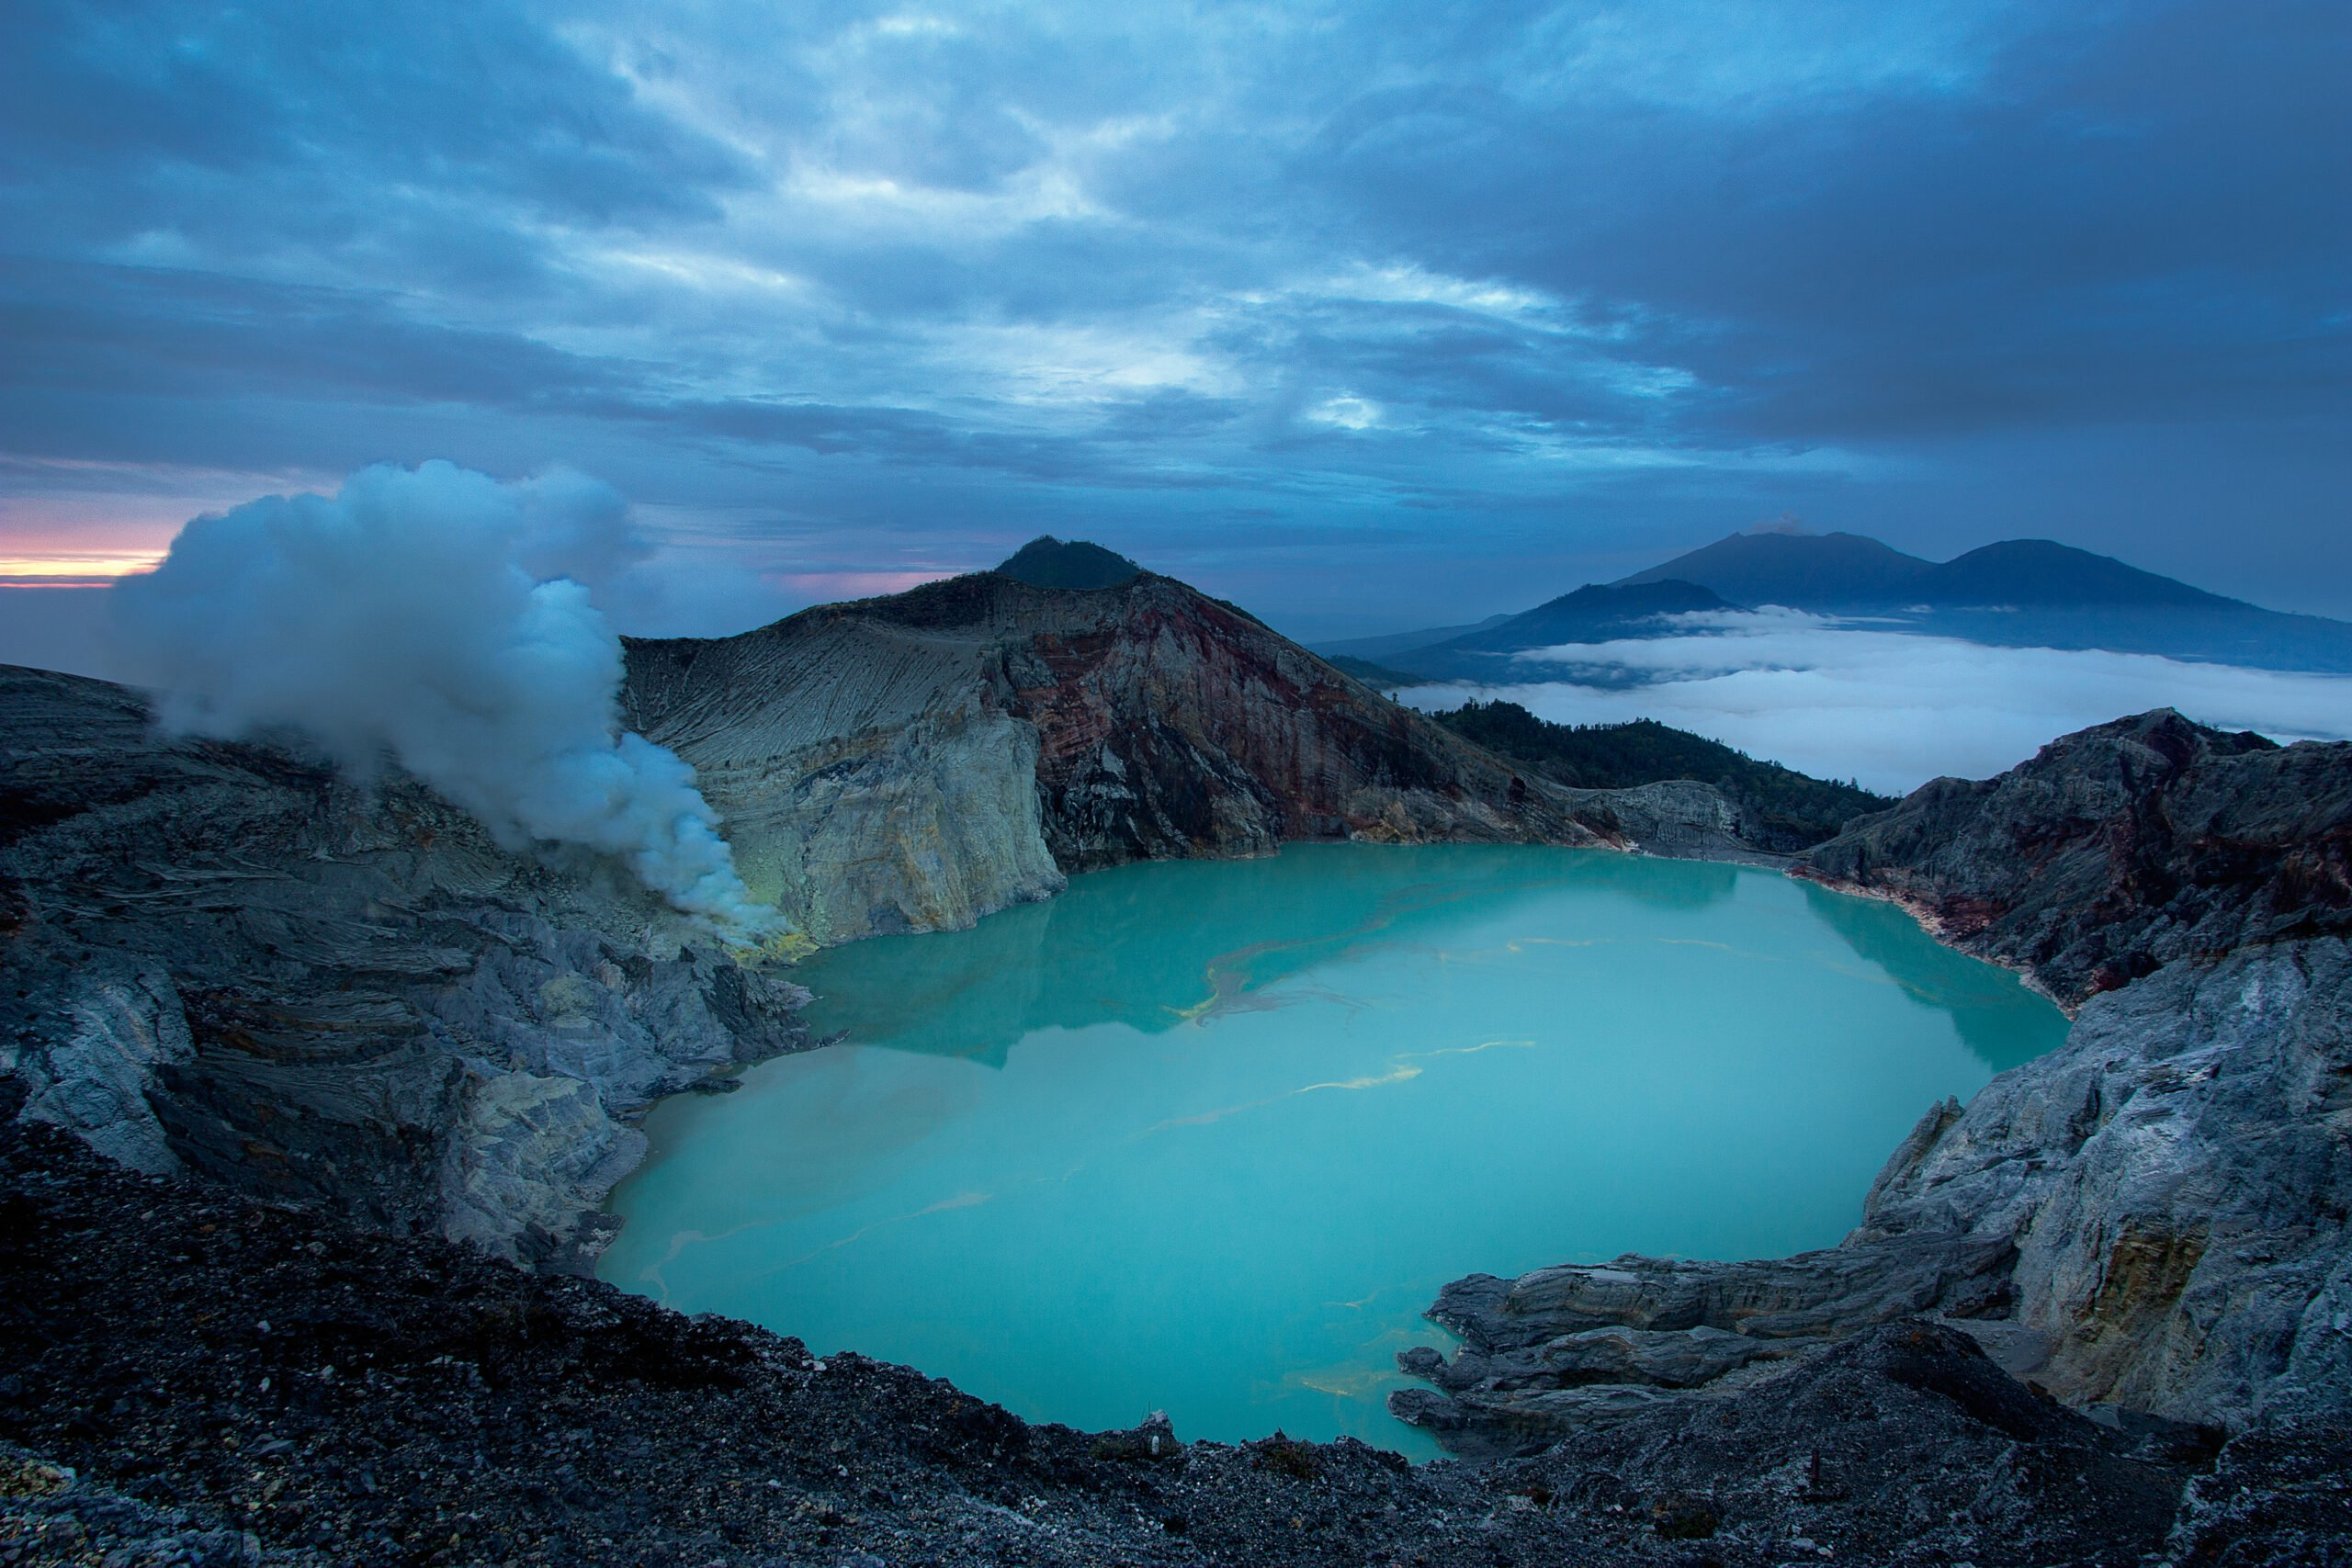 Trek To Ijen Crater In Our Wonders Of East Java 4 Day V.i.p Tour